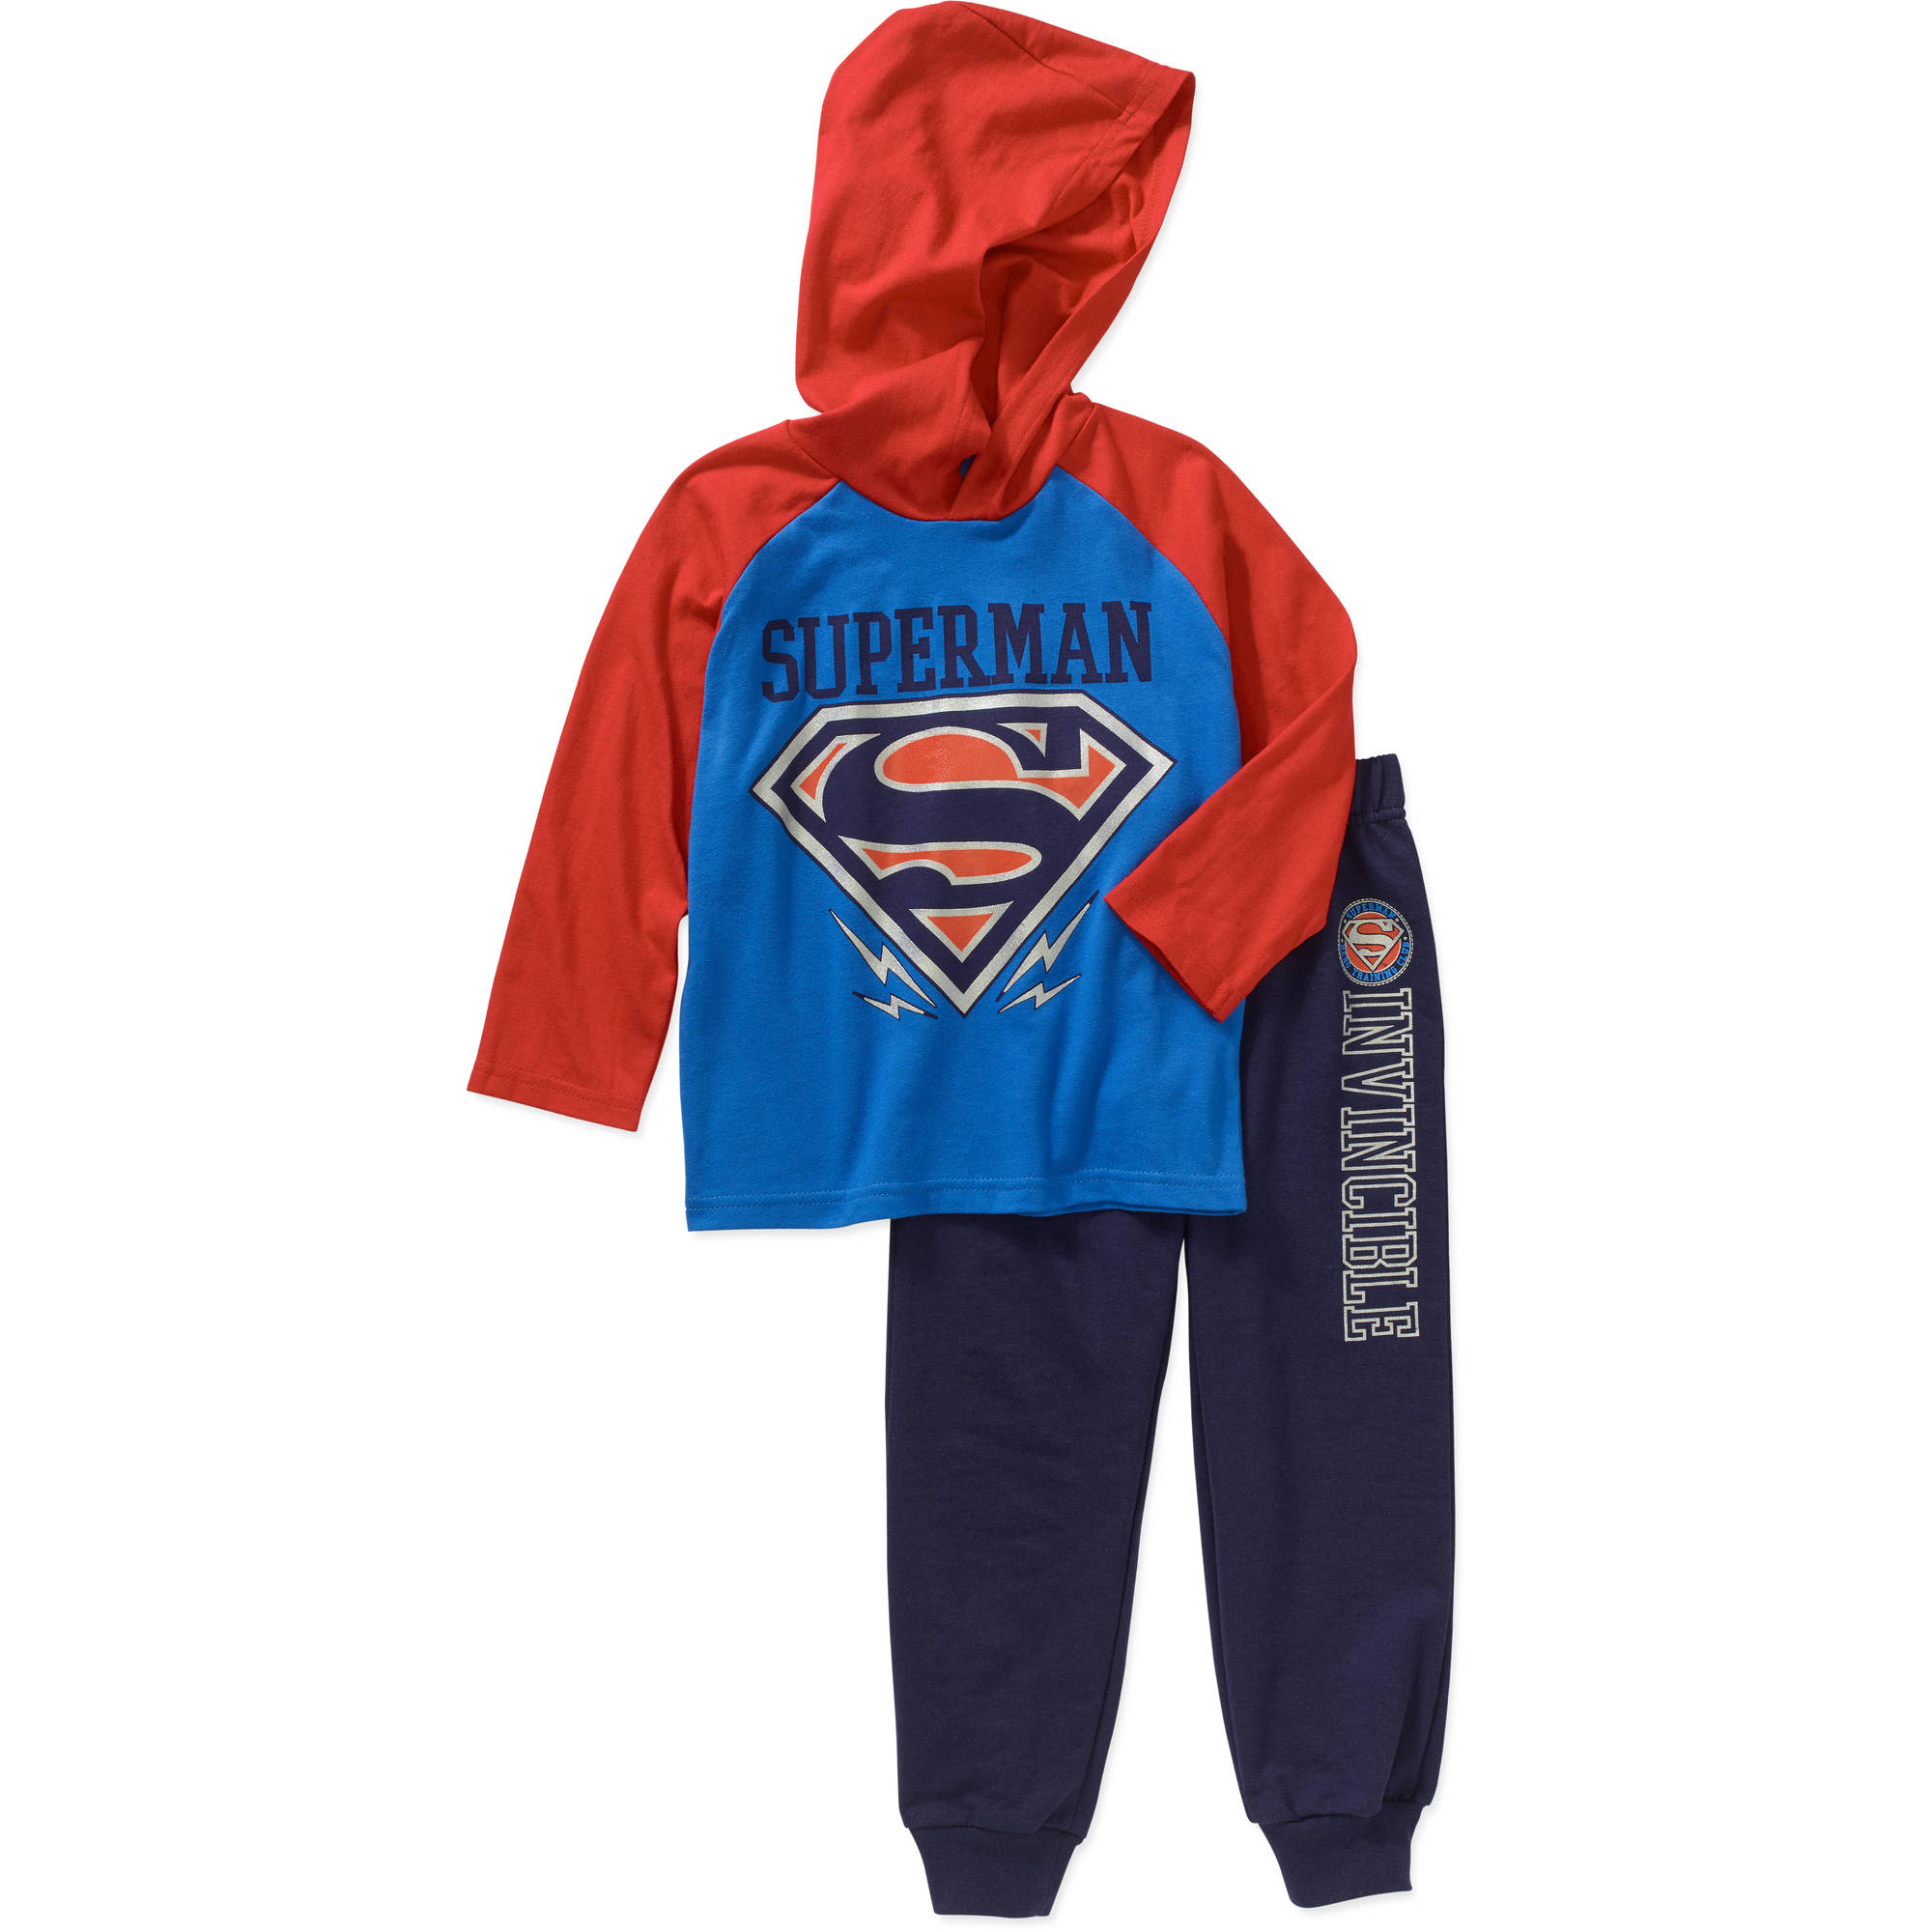 Superman Toddler Boy Hooded Tee and Pant Set